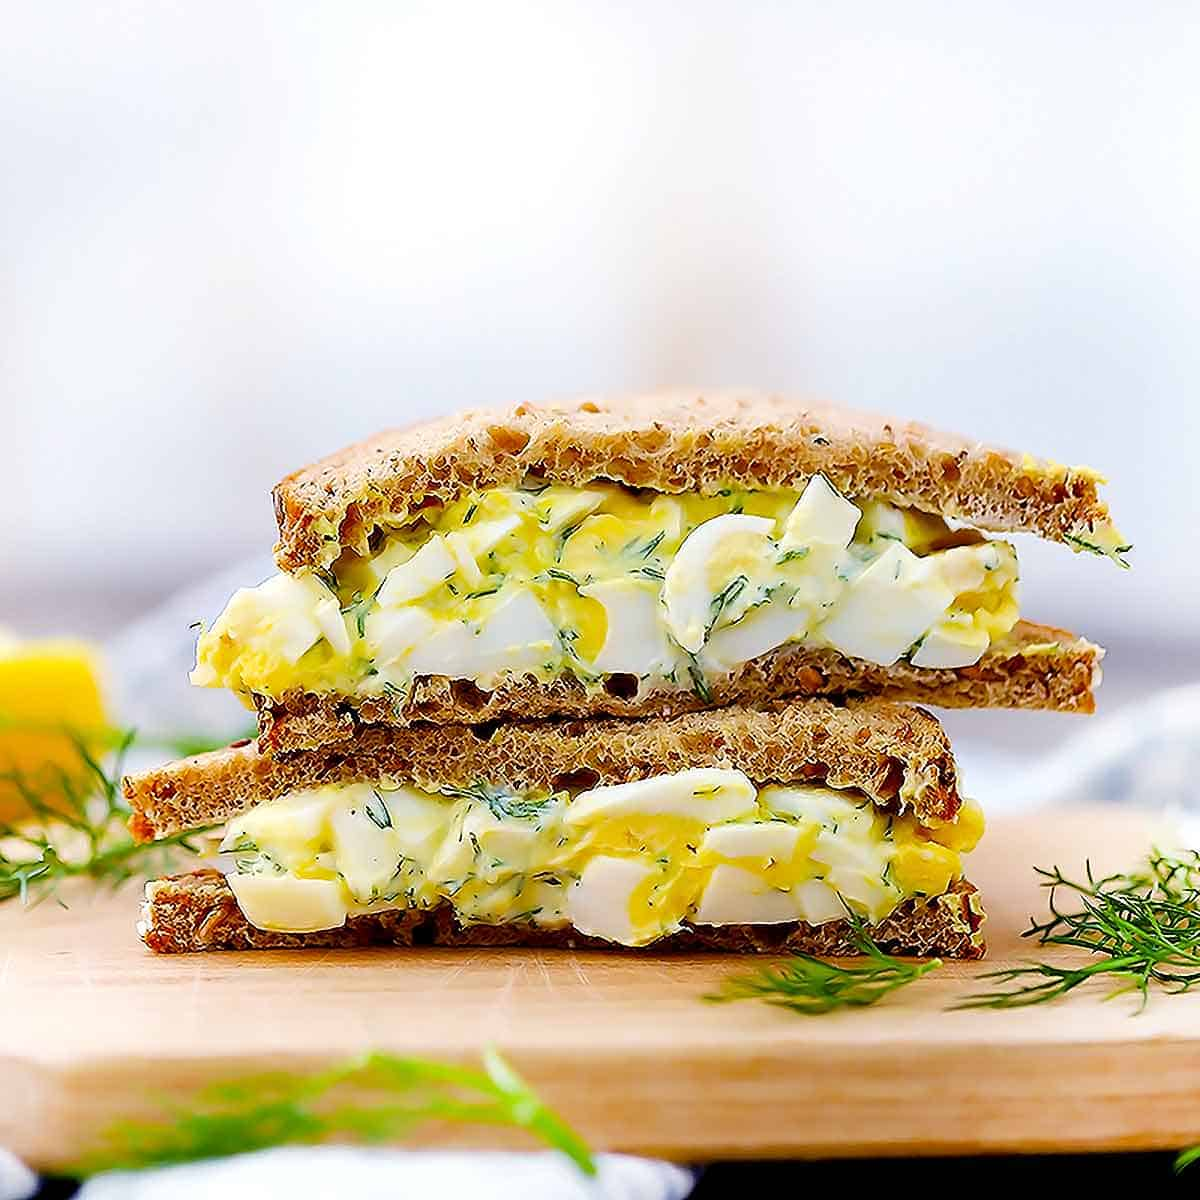 This healthy and fresh egg salad recipe is made with Greek yogurt instead of mayo, flavored with dill, and so yummy. Only 5 ingredients and a perfect easy-to-pack lunch!